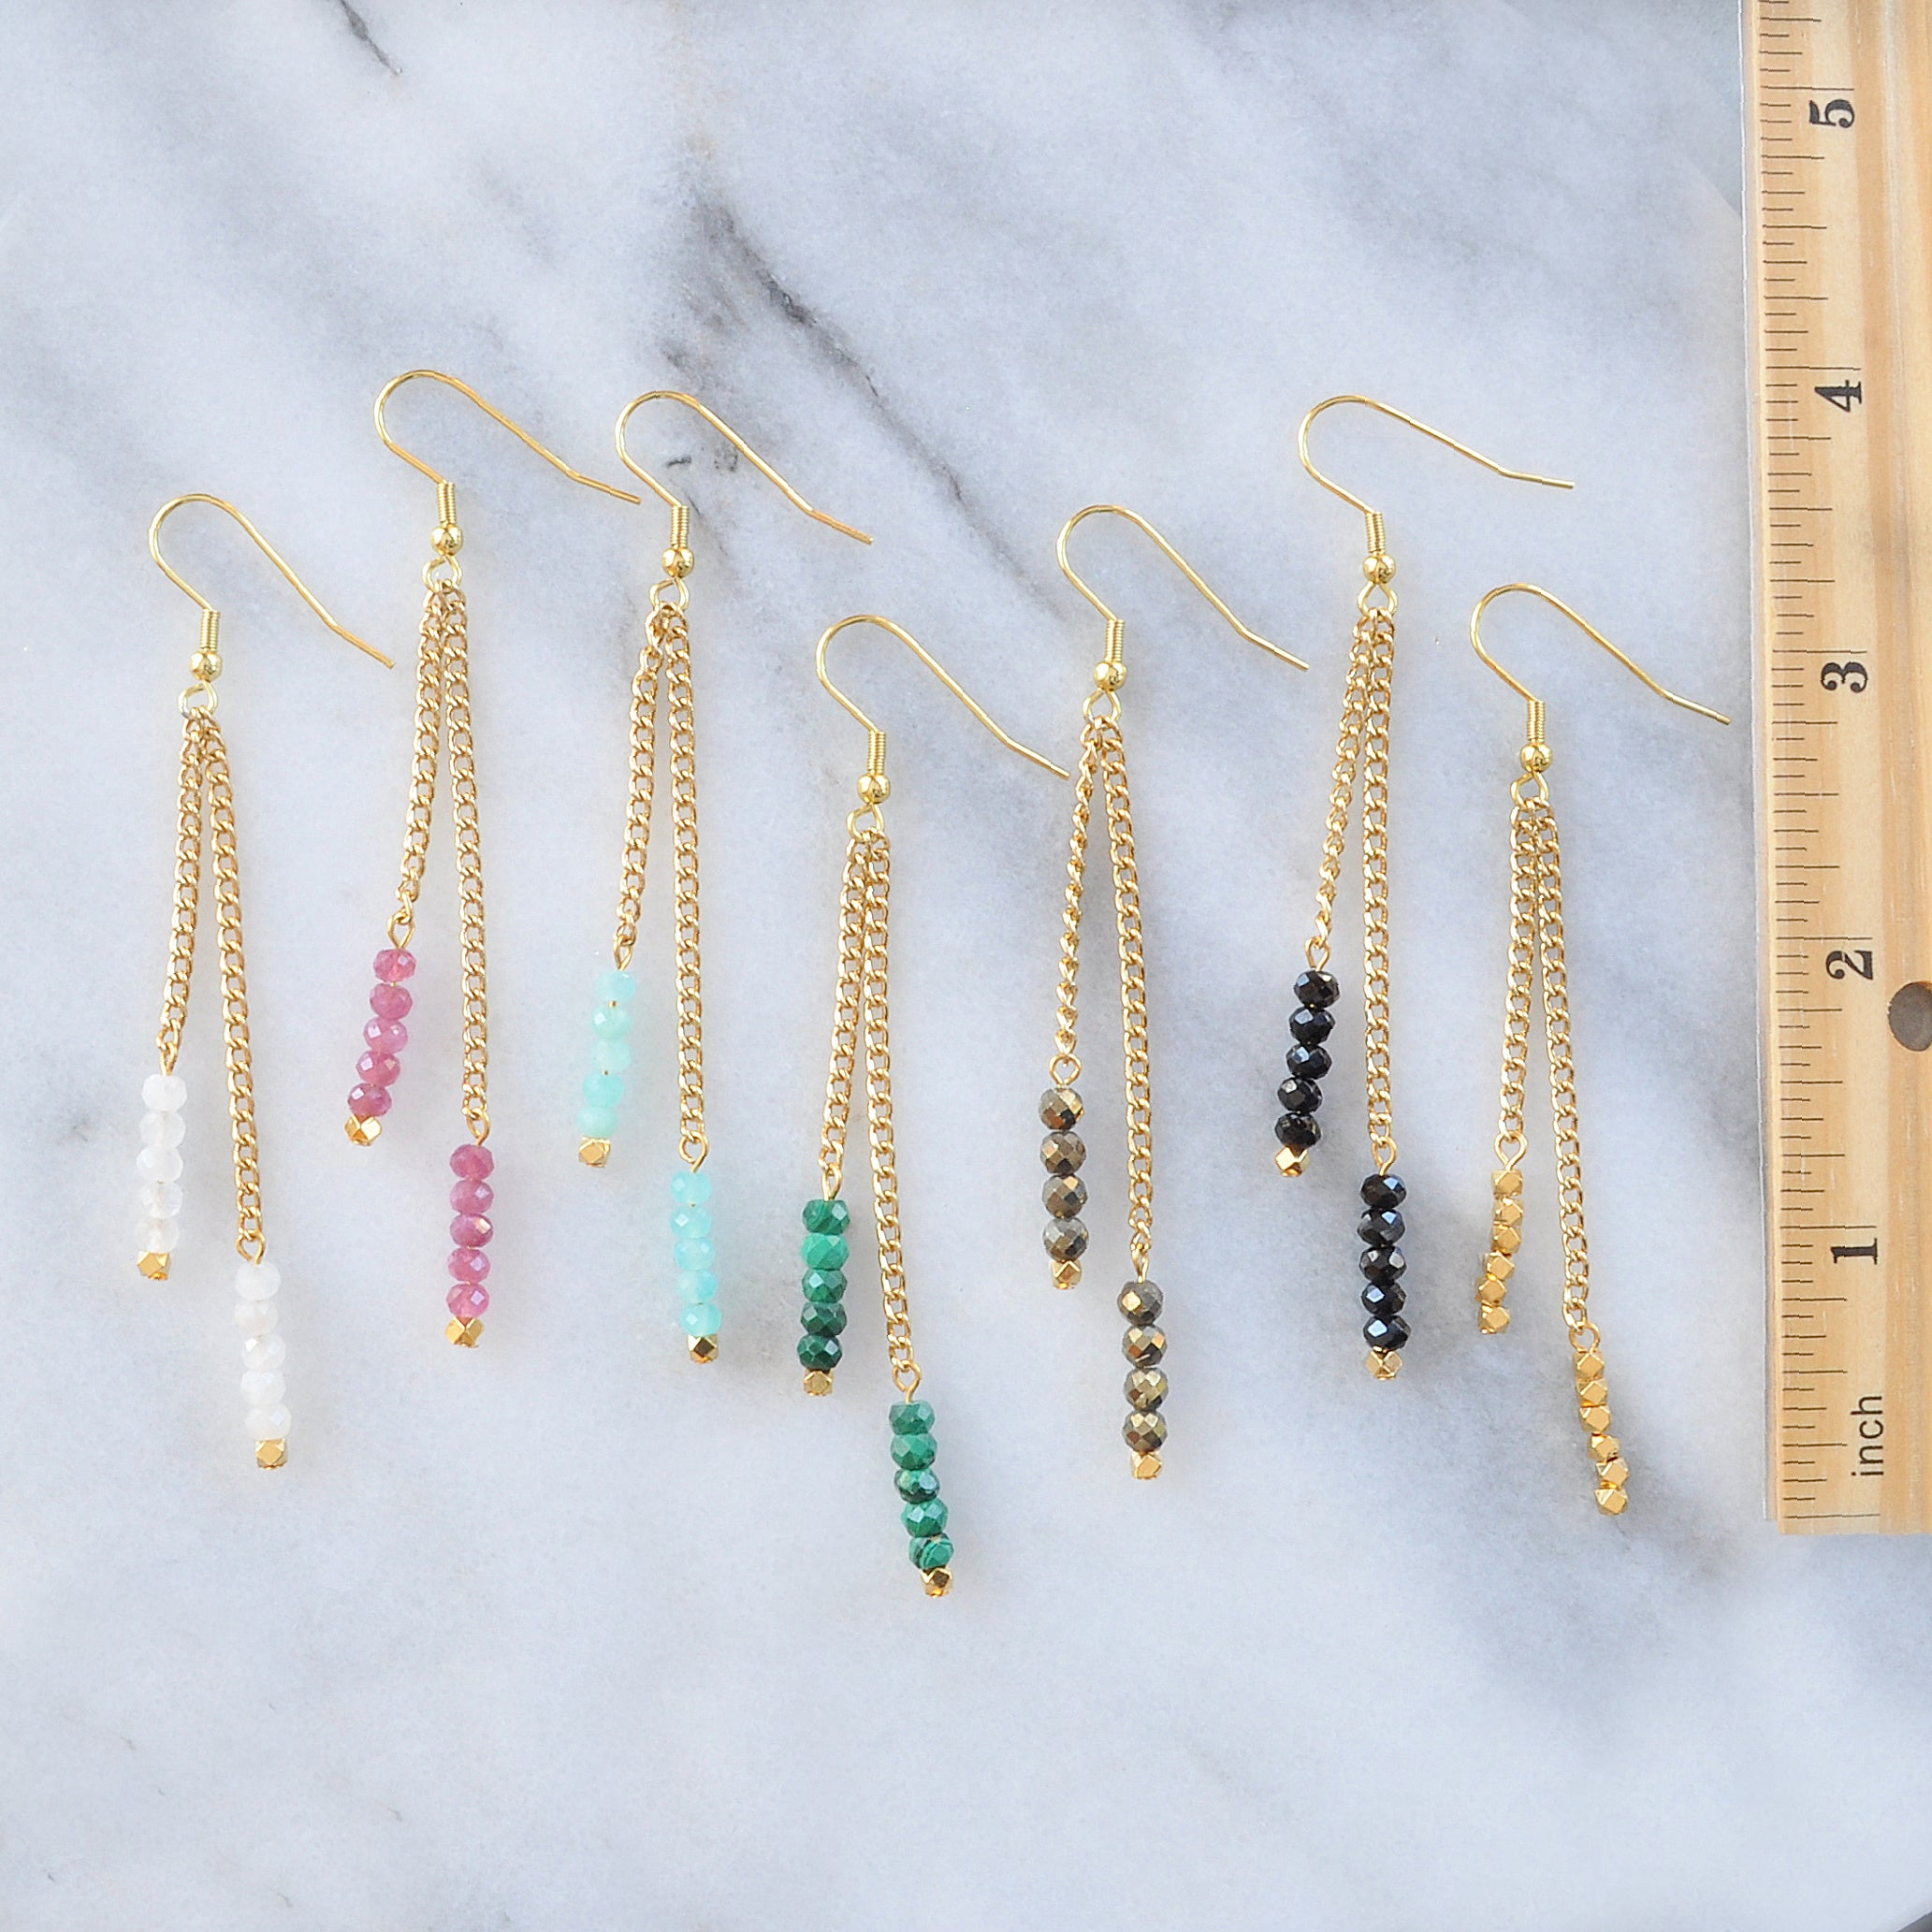 Libby & Smee Gemstone Gold chain Earrings available with Moonstone, Pink Tourmaline, Amazonite, Malachite, Pyrite, Black Spinel and Gold Beads measure 3.5 inches long